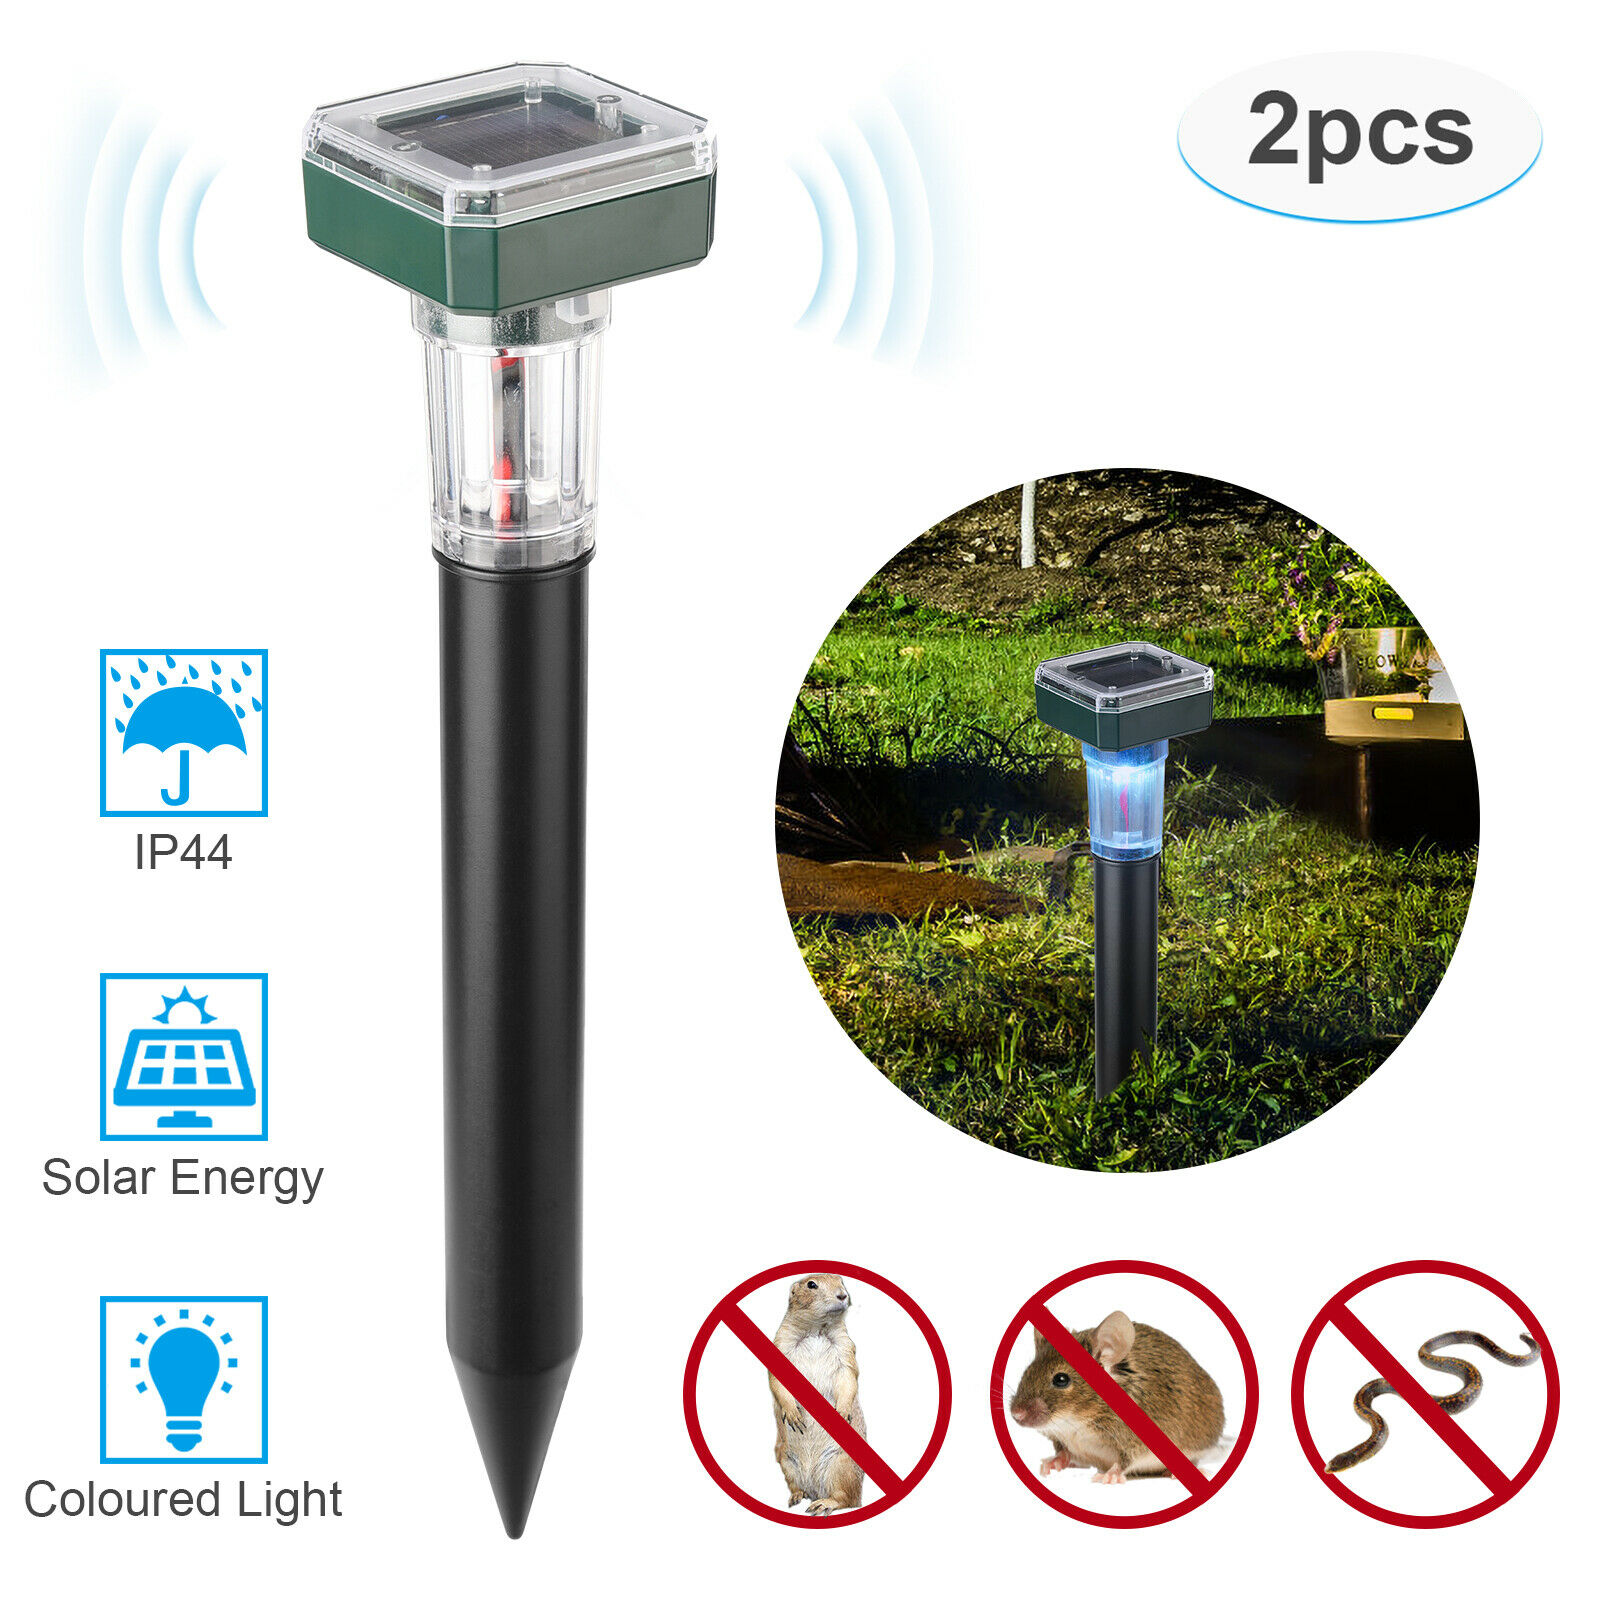 2pcs Mouse Insect Repeller Solar Light Tile Tools Farm IP44 Waterproof Lawn Lamp